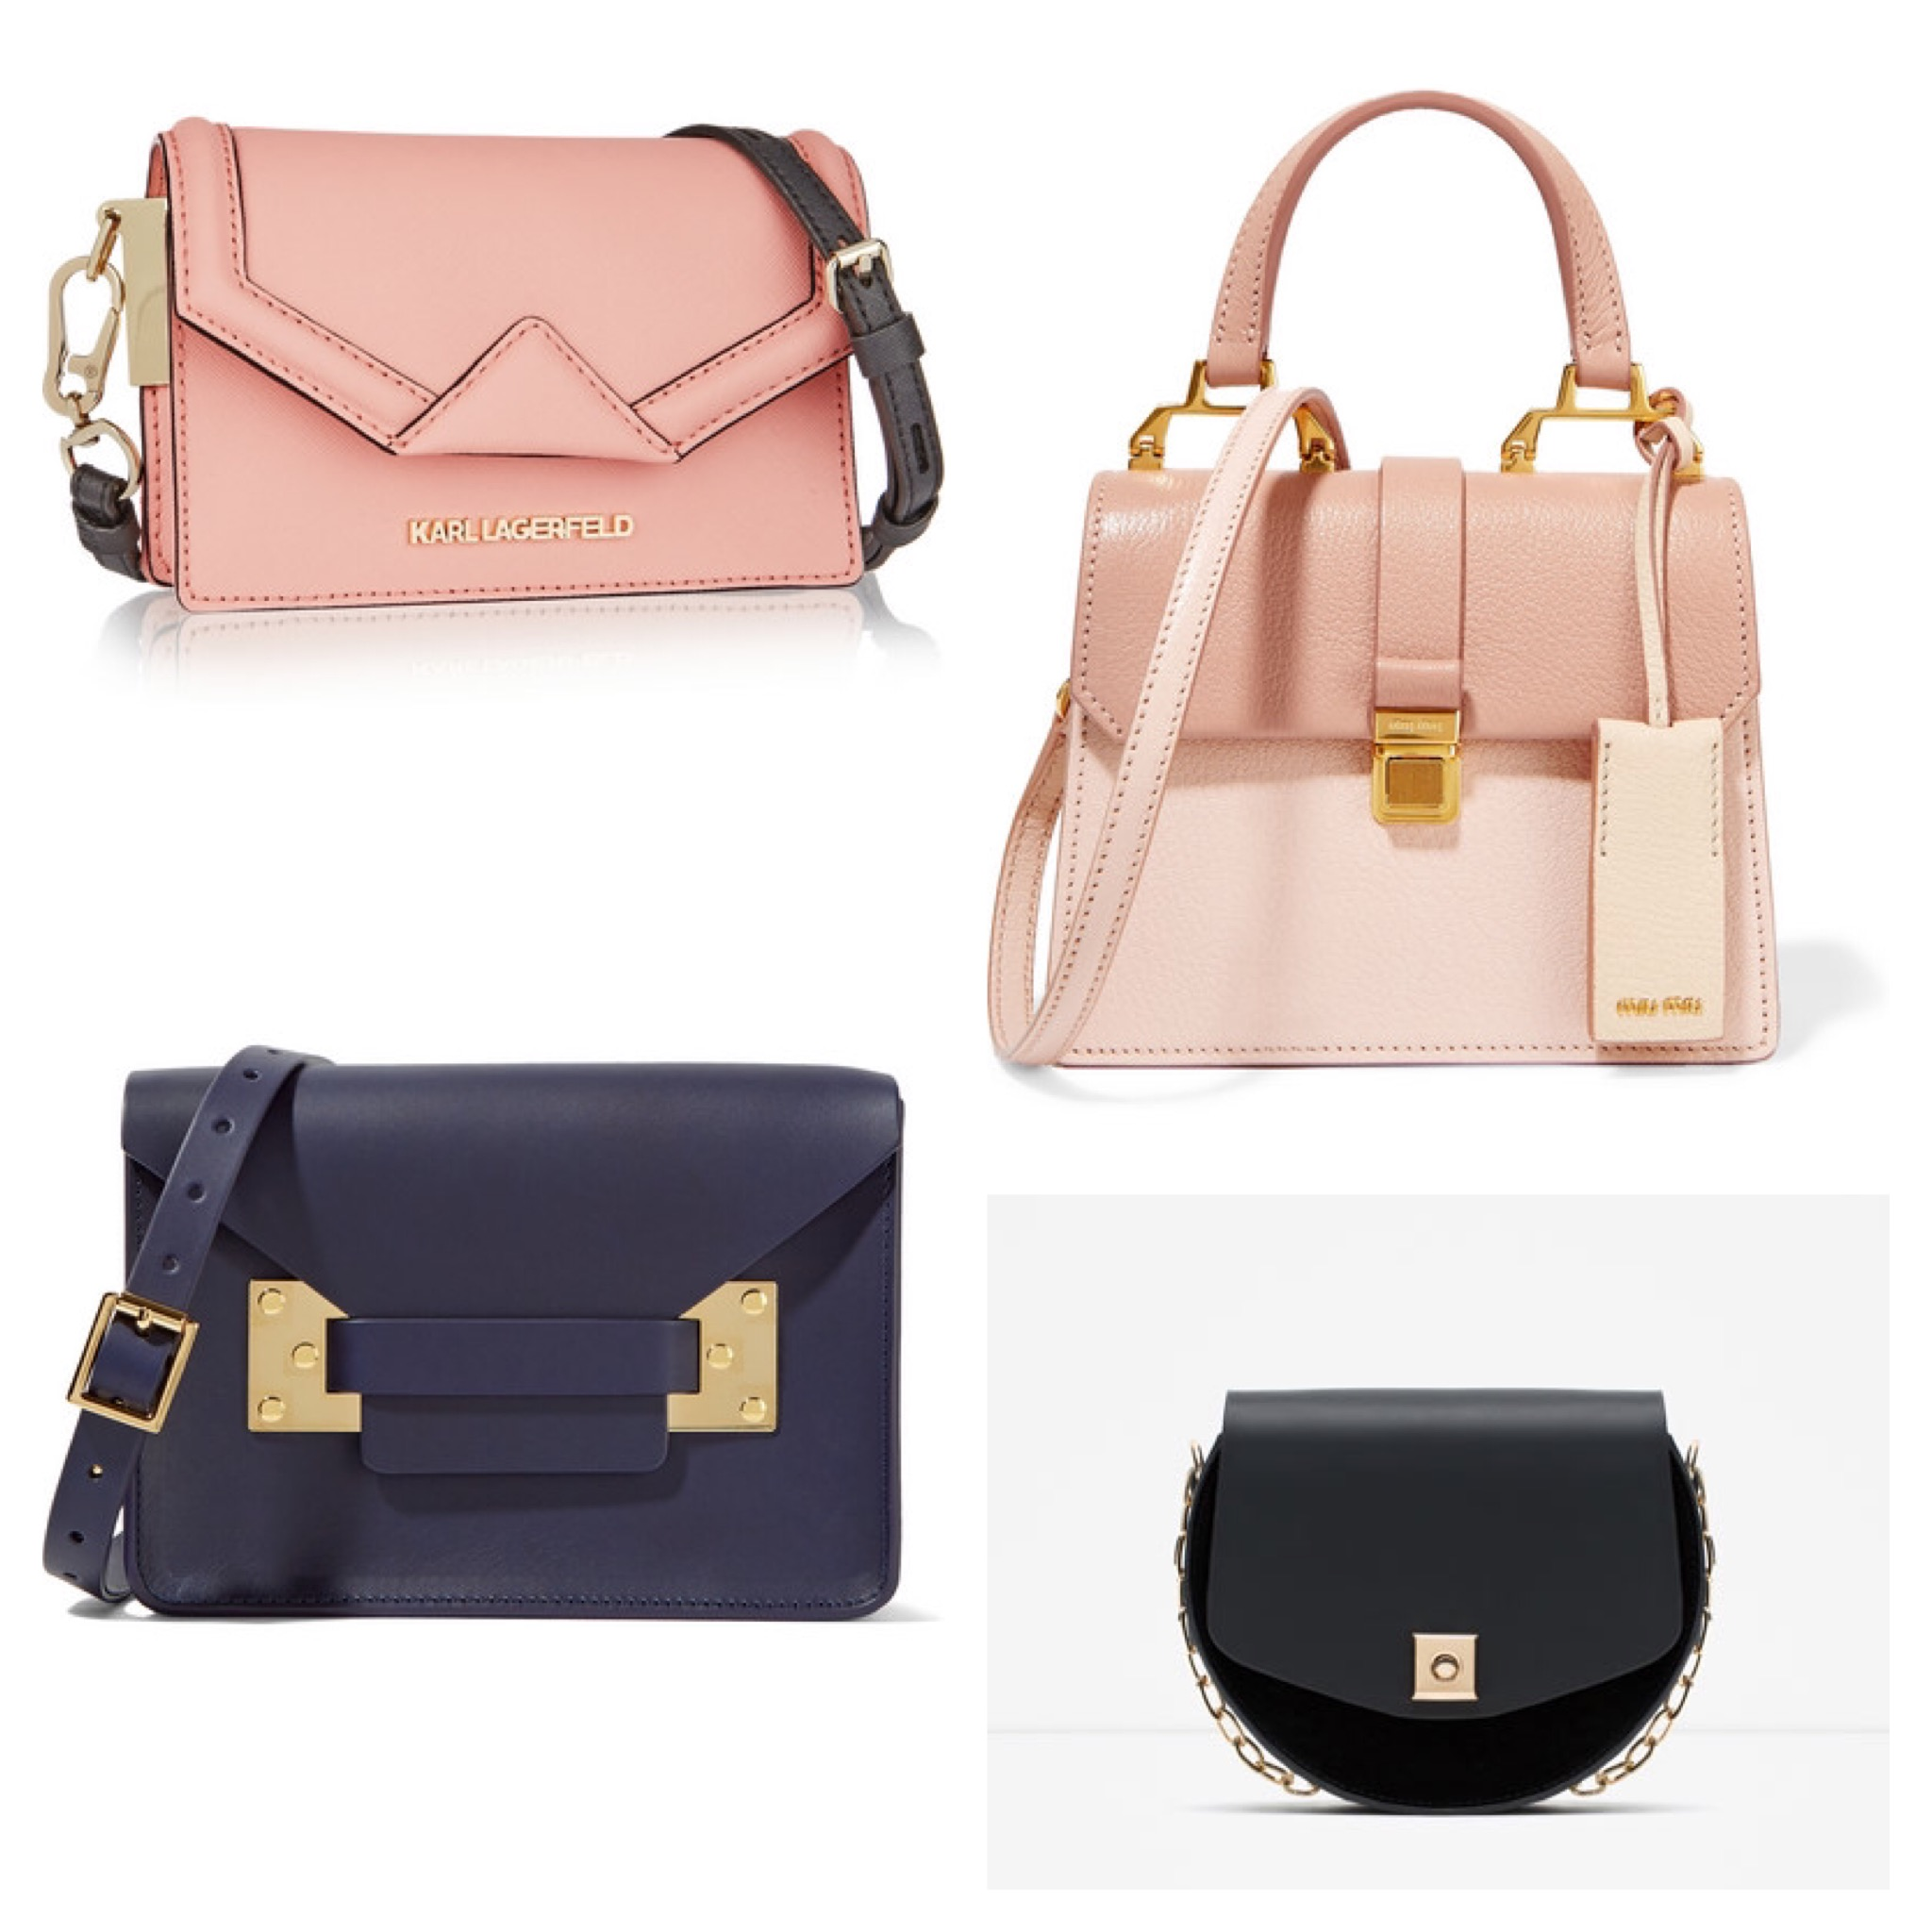 Perfect mini-bags for spring